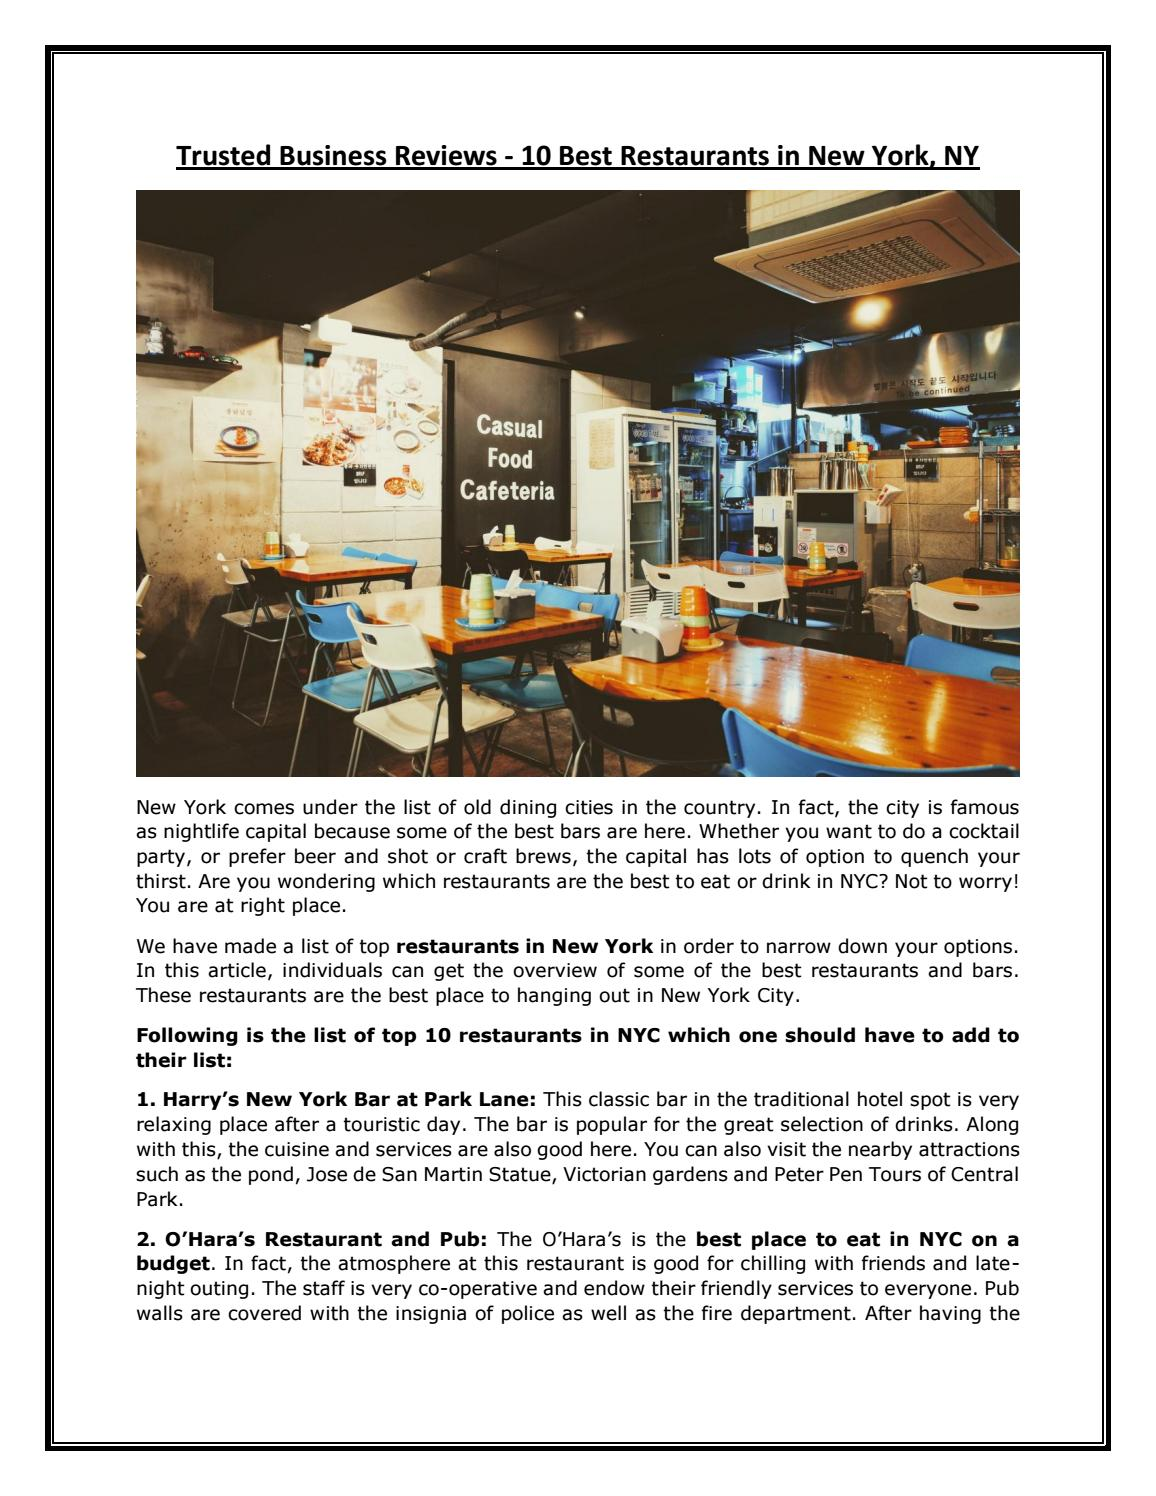 Trusted Business Reviews 10 Best Restaurants In New York By Trustedbusinessreviews Issuu